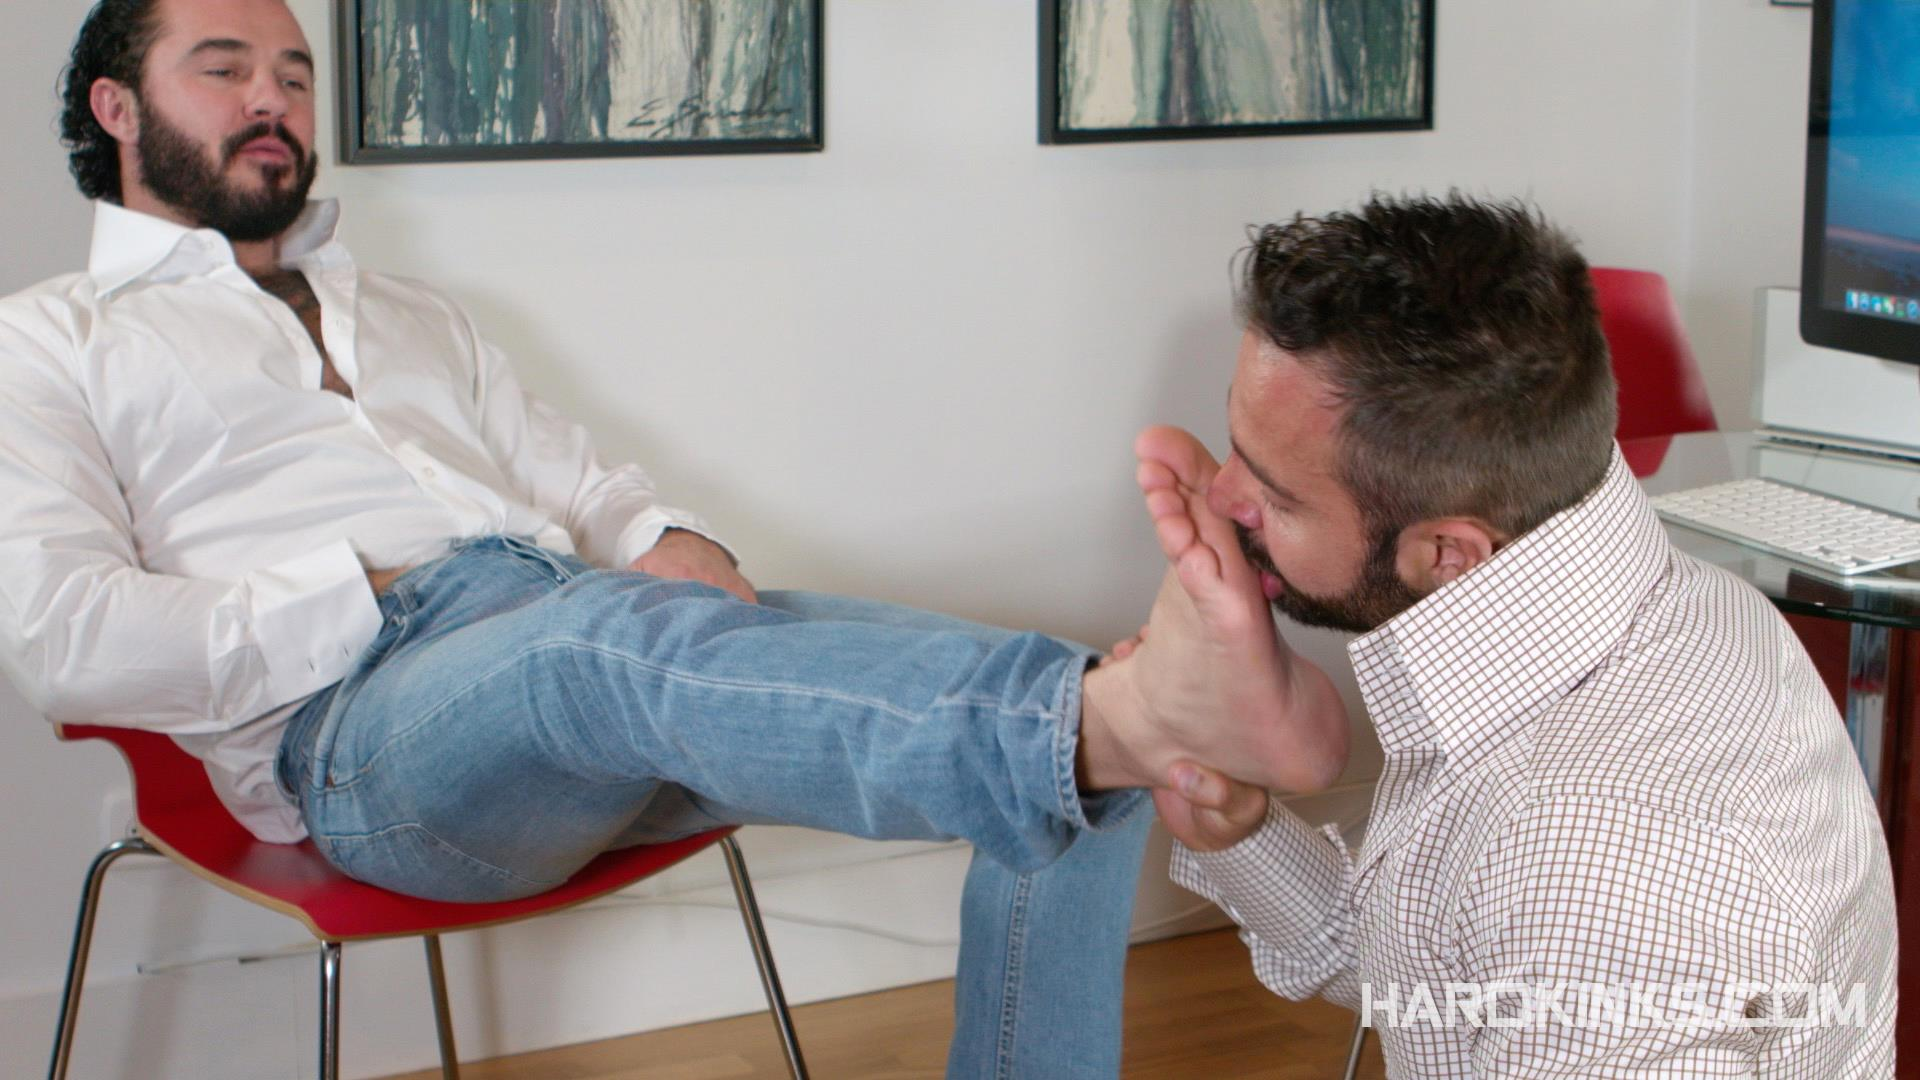 Hardkinks Jessy Ares and Martin Mazza Hairy Alpha Male Amateur Gay Porn 04 Hairy Muscle Alpha Male Dominates His Coworker